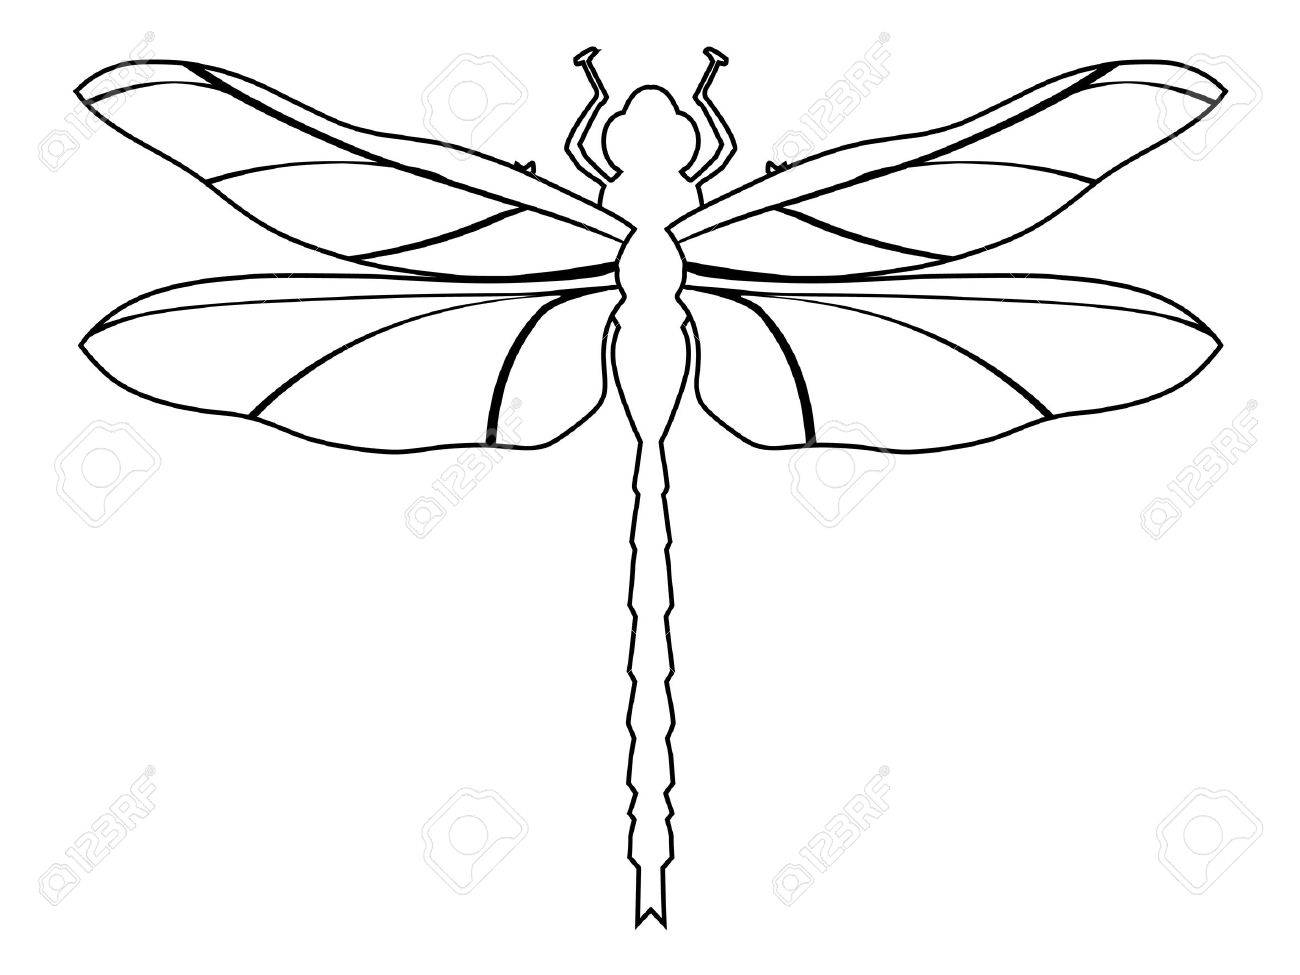 1300x975 Outline Illustration Of Dragonfly, Top View Royalty Free Cliparts